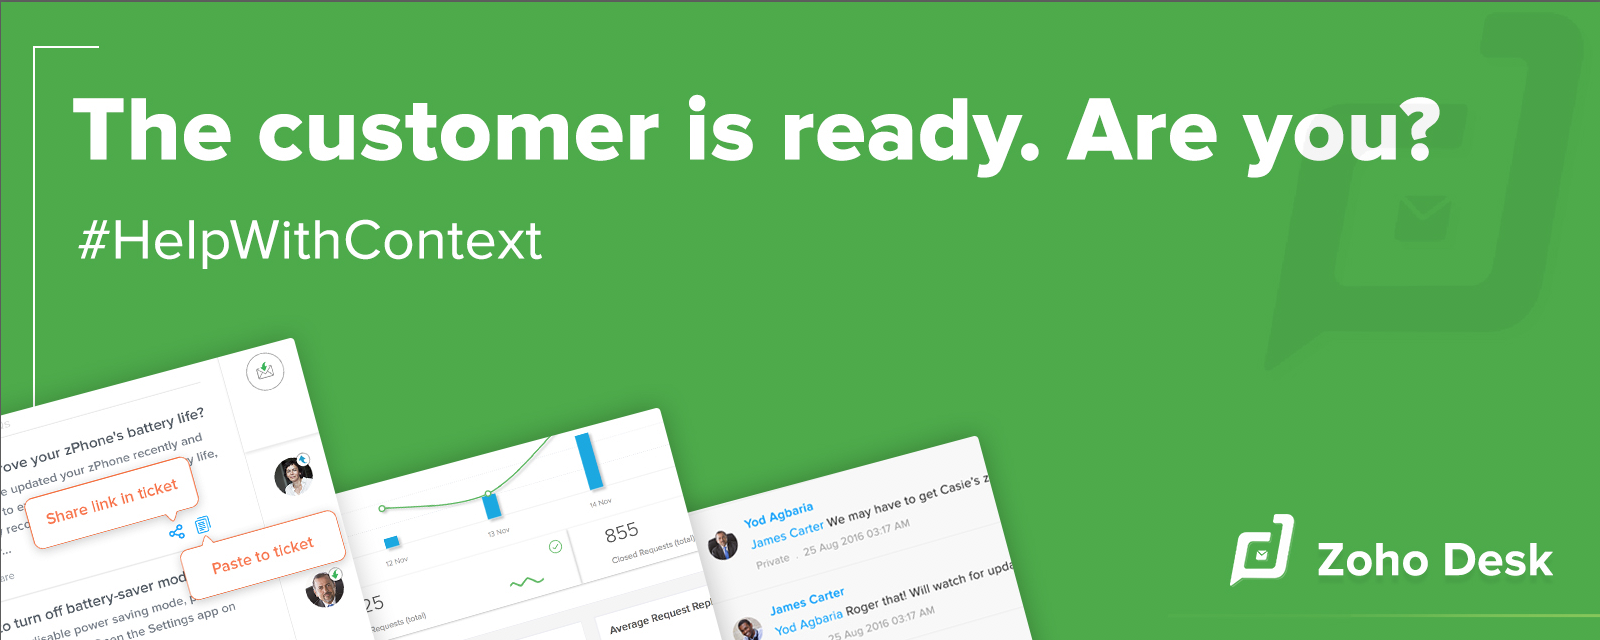 Announcing Zoho Desk — the industry's first context-aware help desk software.